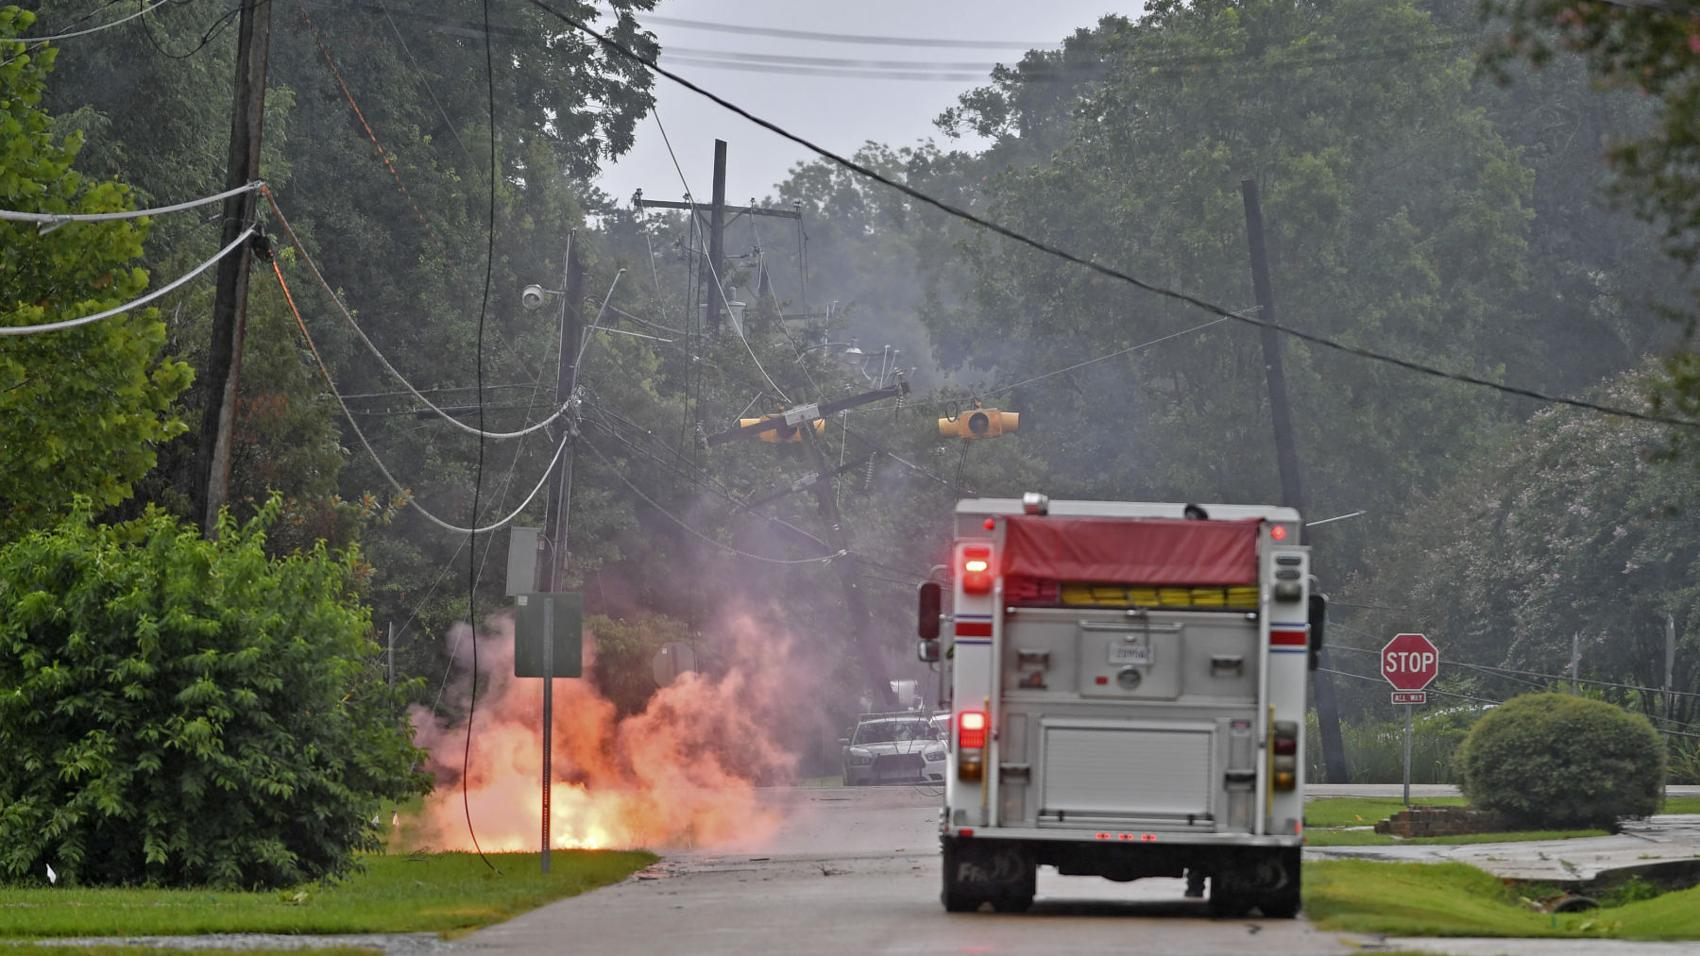 Photos, video: Hurricane Barry impacts Baton Rouge area; downed power line sparks fire